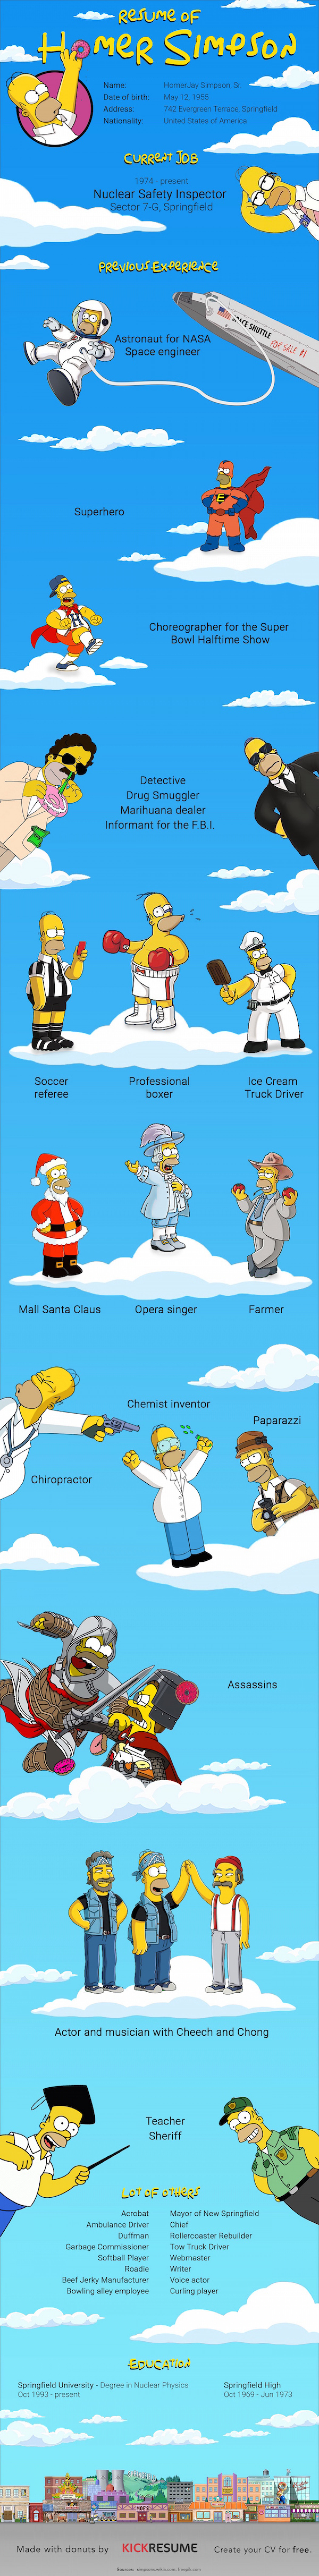 Resume of Homer Simpson Infographic